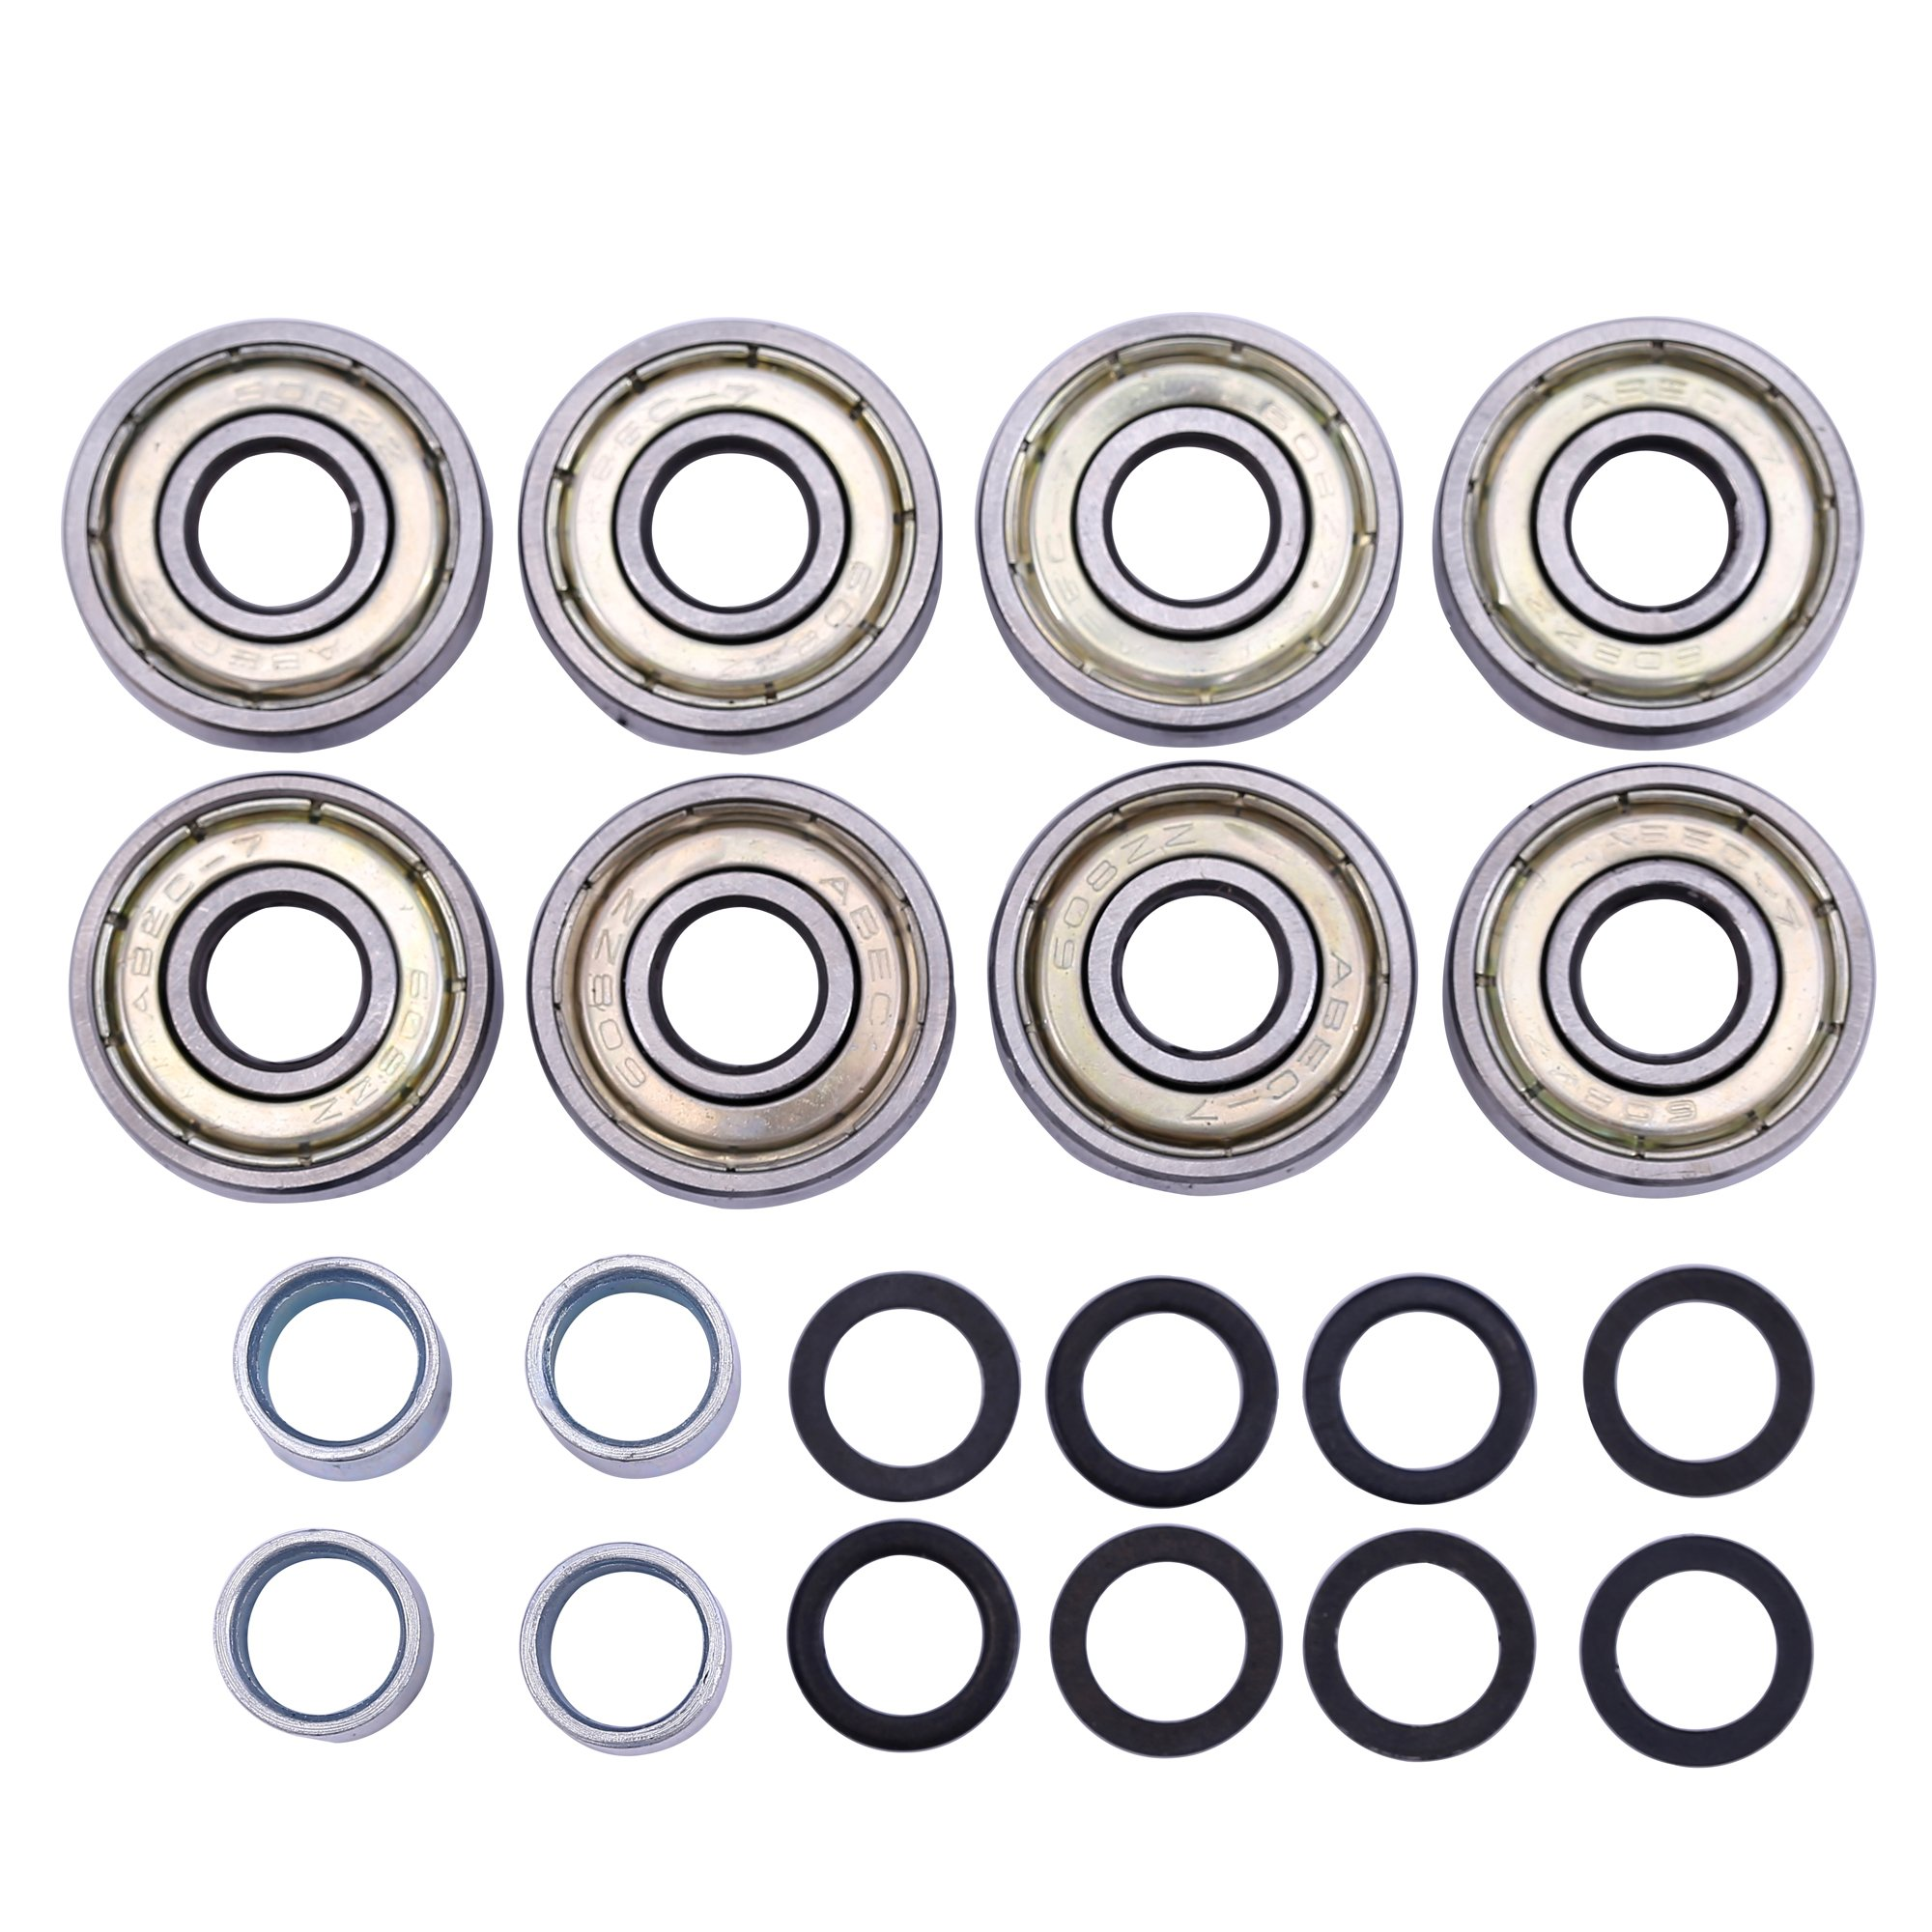 Adventure World 608ZZ ABEC-7 Skate Wheel Bearings, Spacers and Washers Kit (Skateboard and Inline Skate) (4 Wheel Pack (8 bearings, 8 washers, 4 spacers))